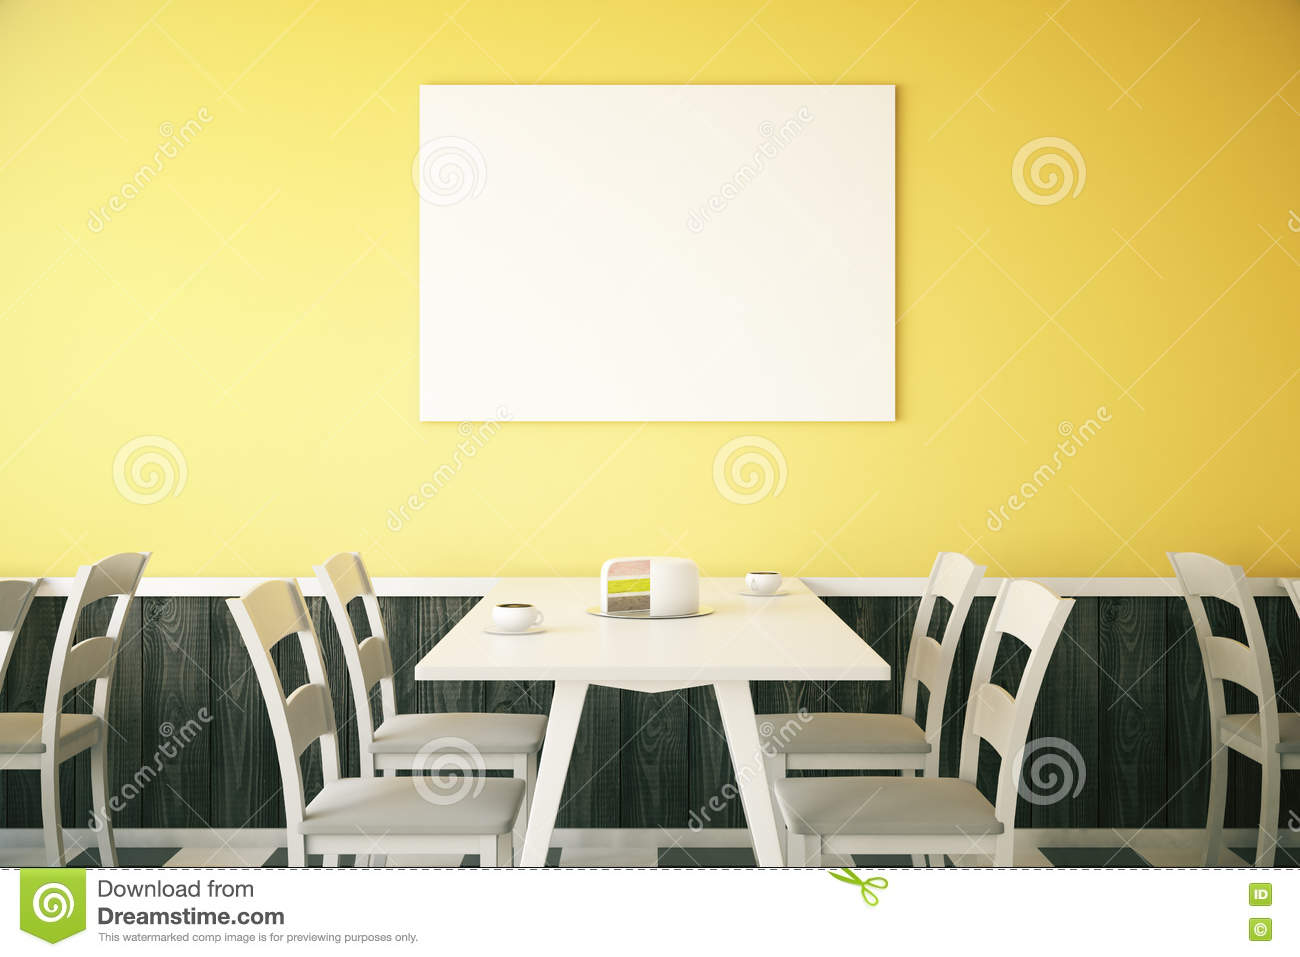 yellow cafe interior with poster stock illustration - image: 72857100